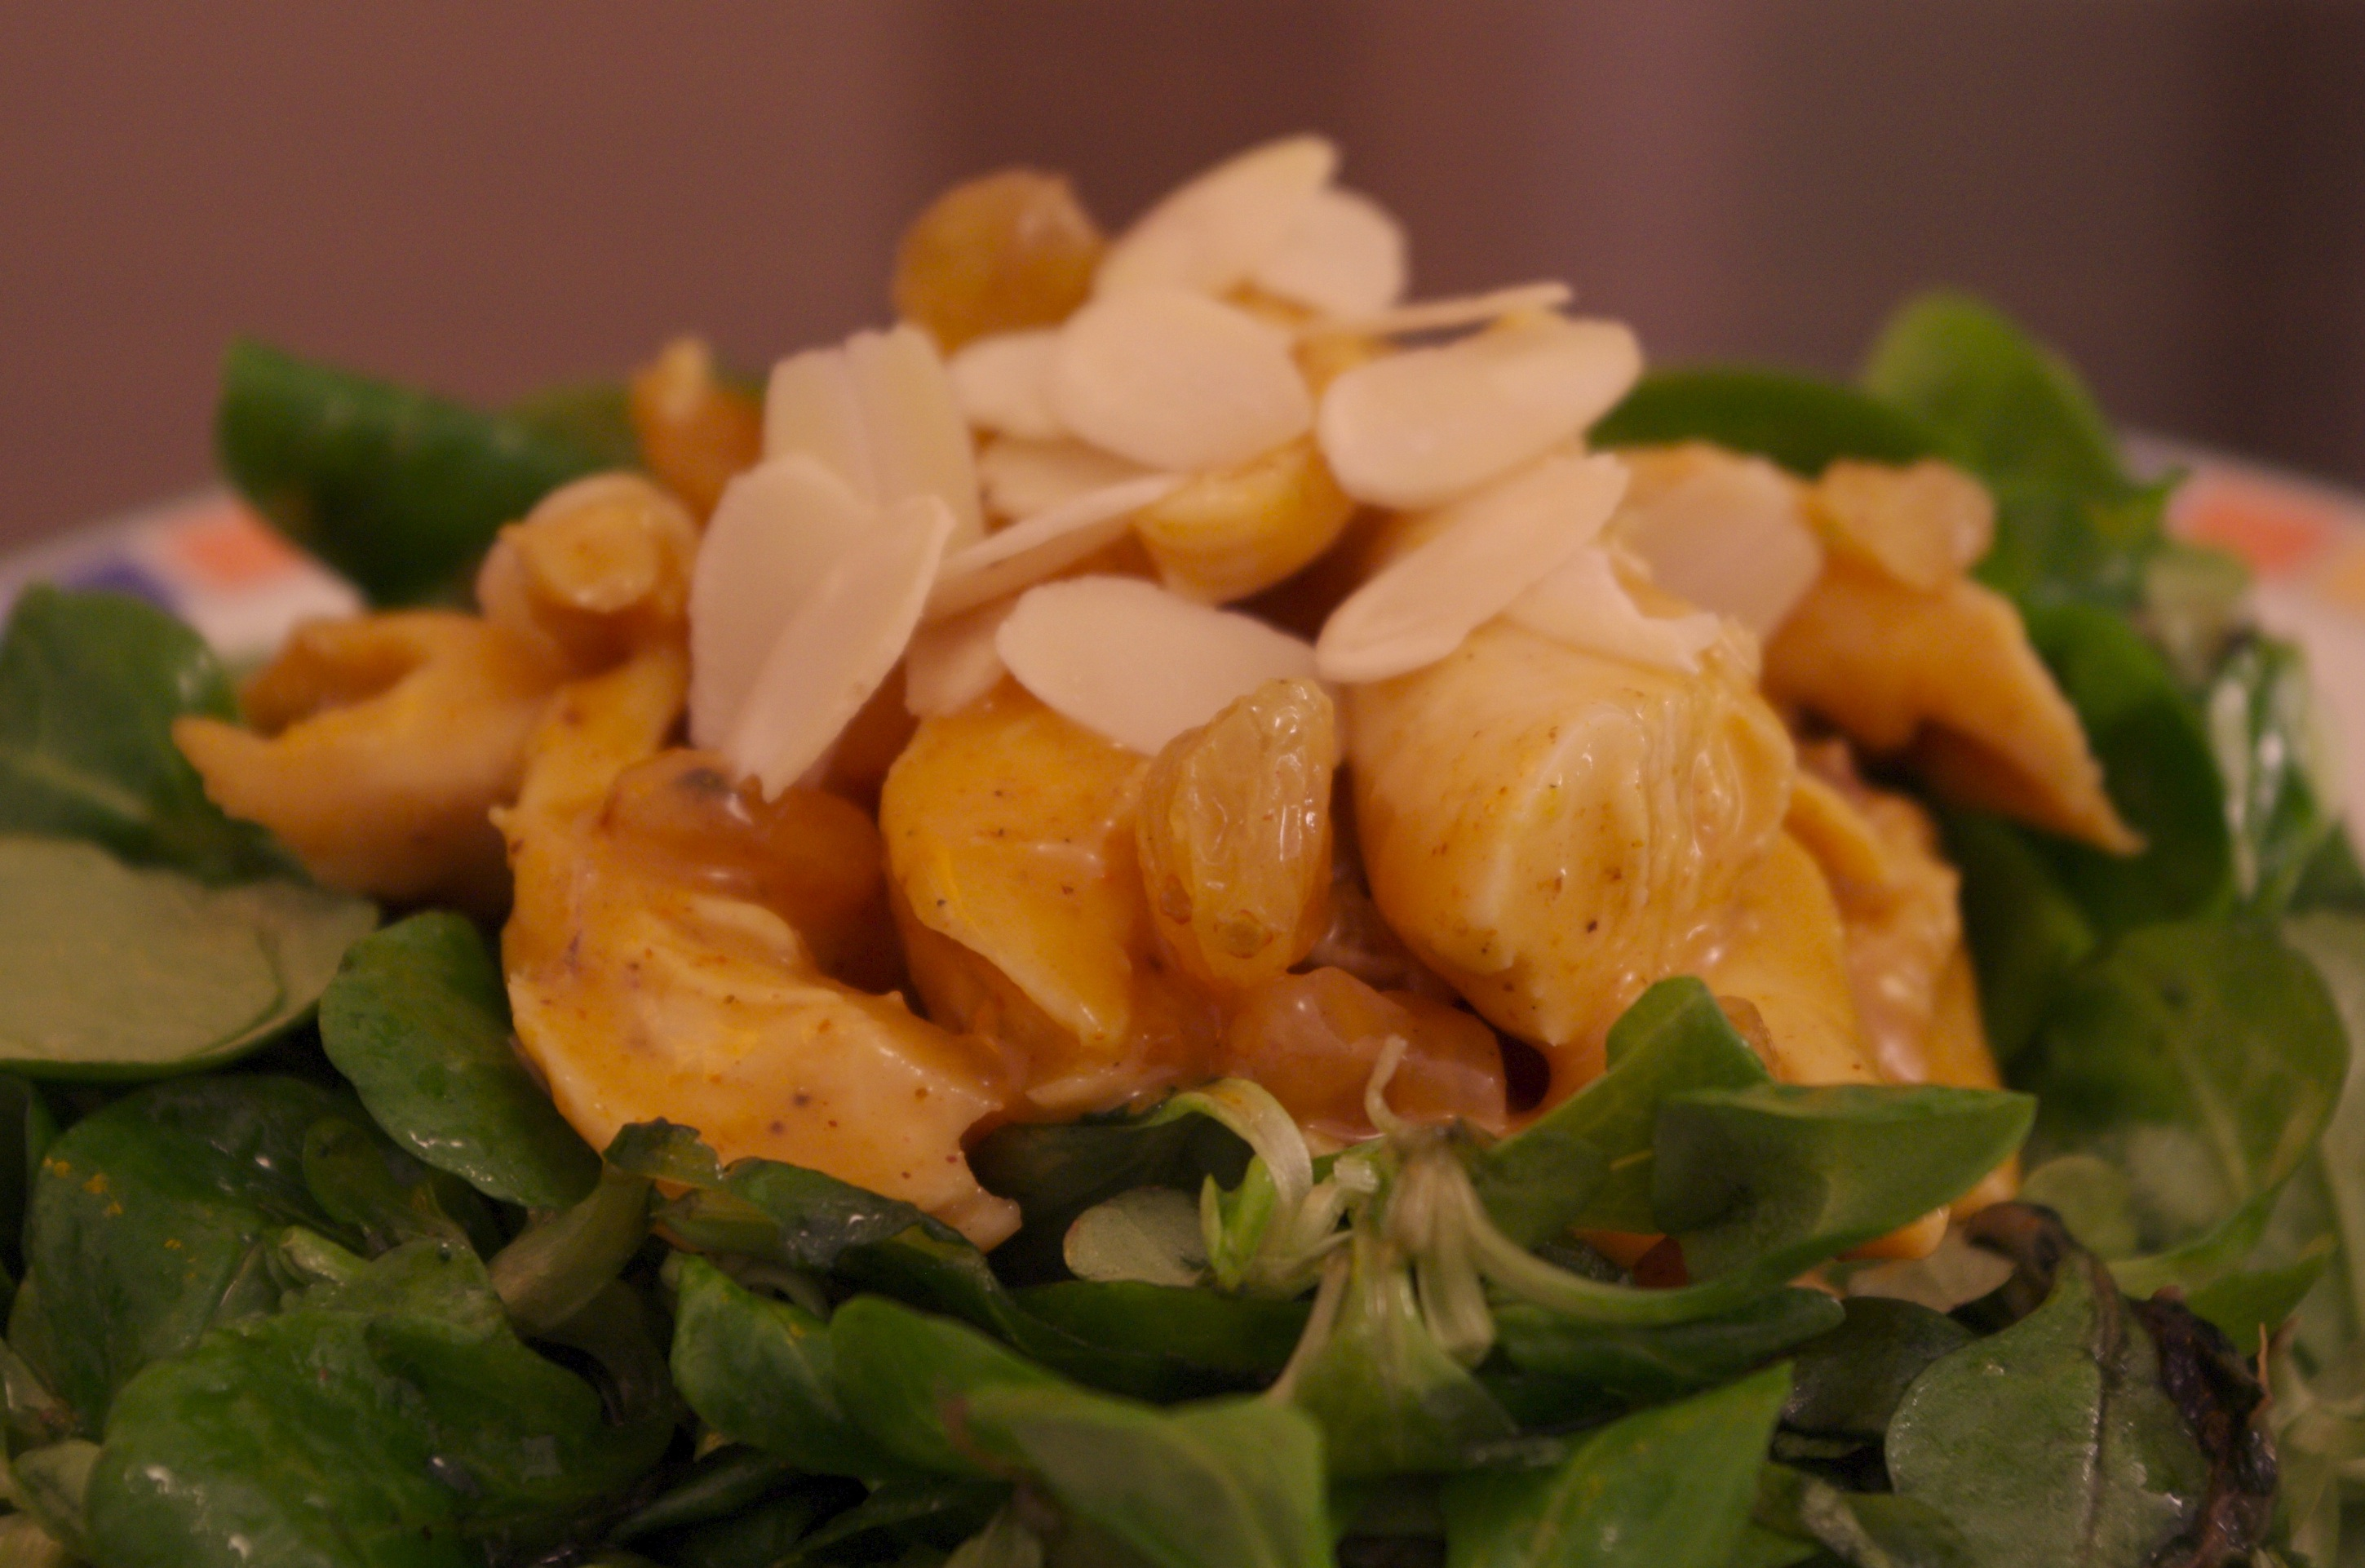 Coronation chicken (préparation au poulet, chutney de mangue et curry)